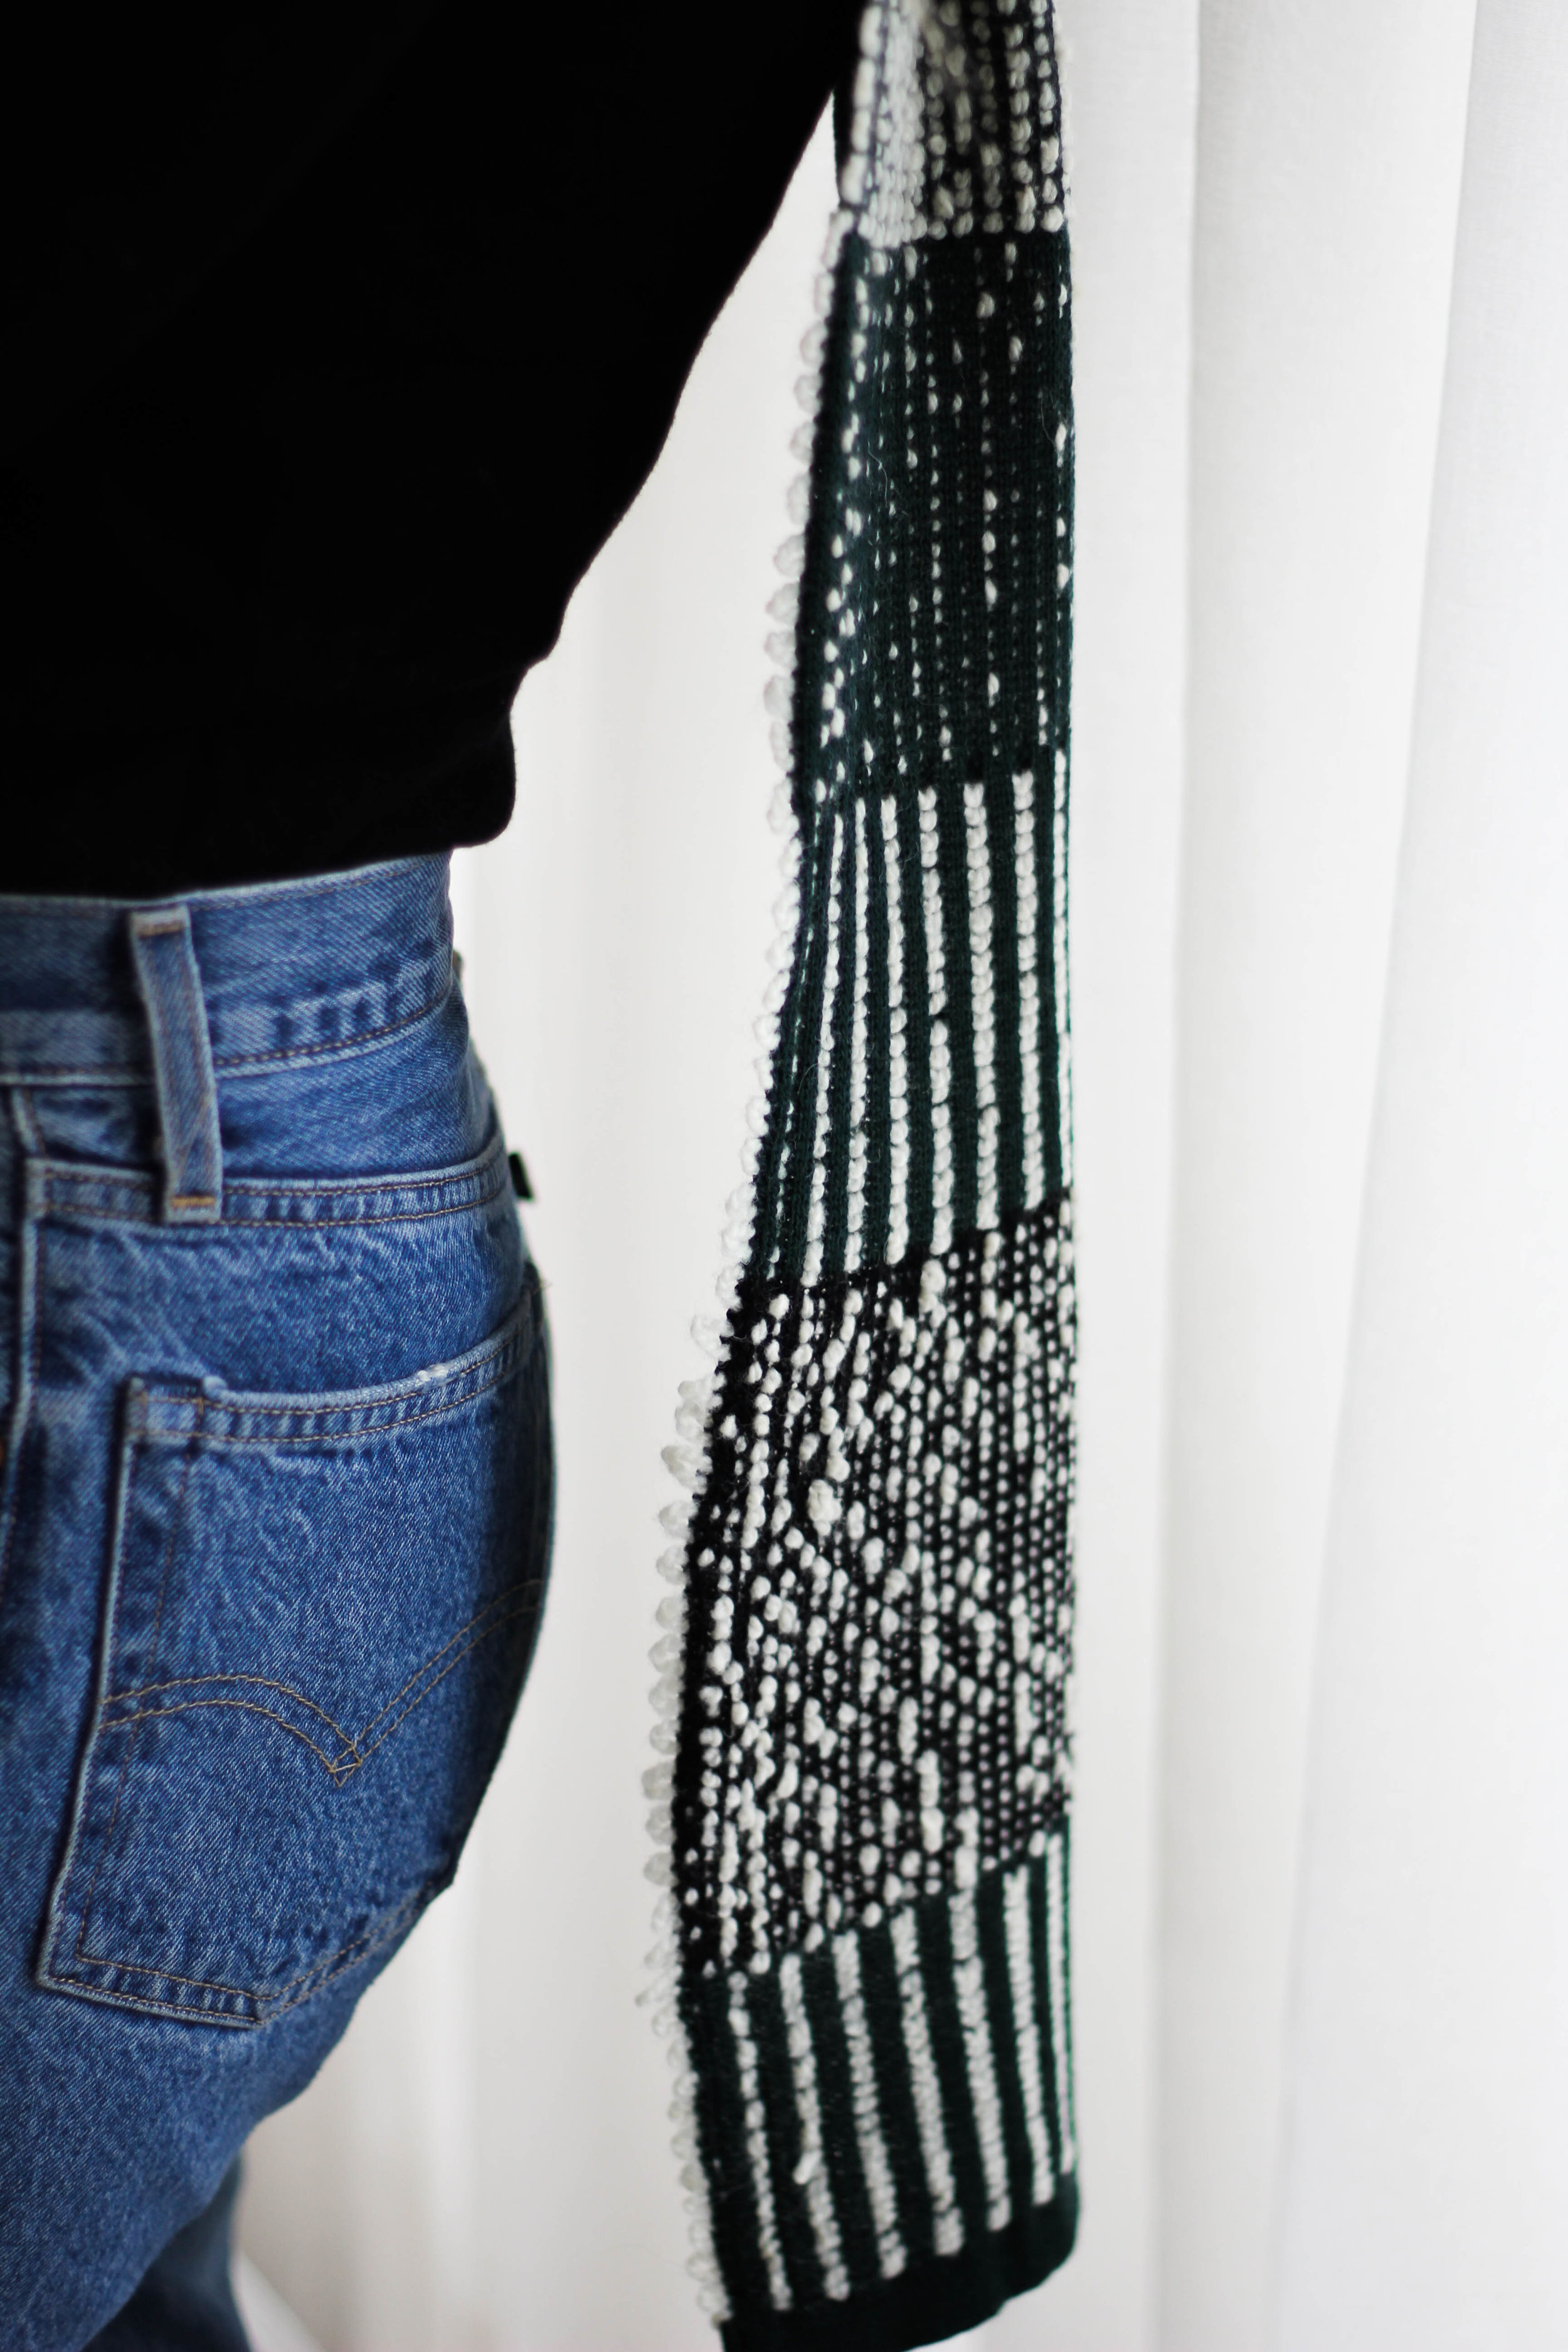 Charlie | Scarves - Charlie is a knitted scarf collection with a focus on graphic patterns